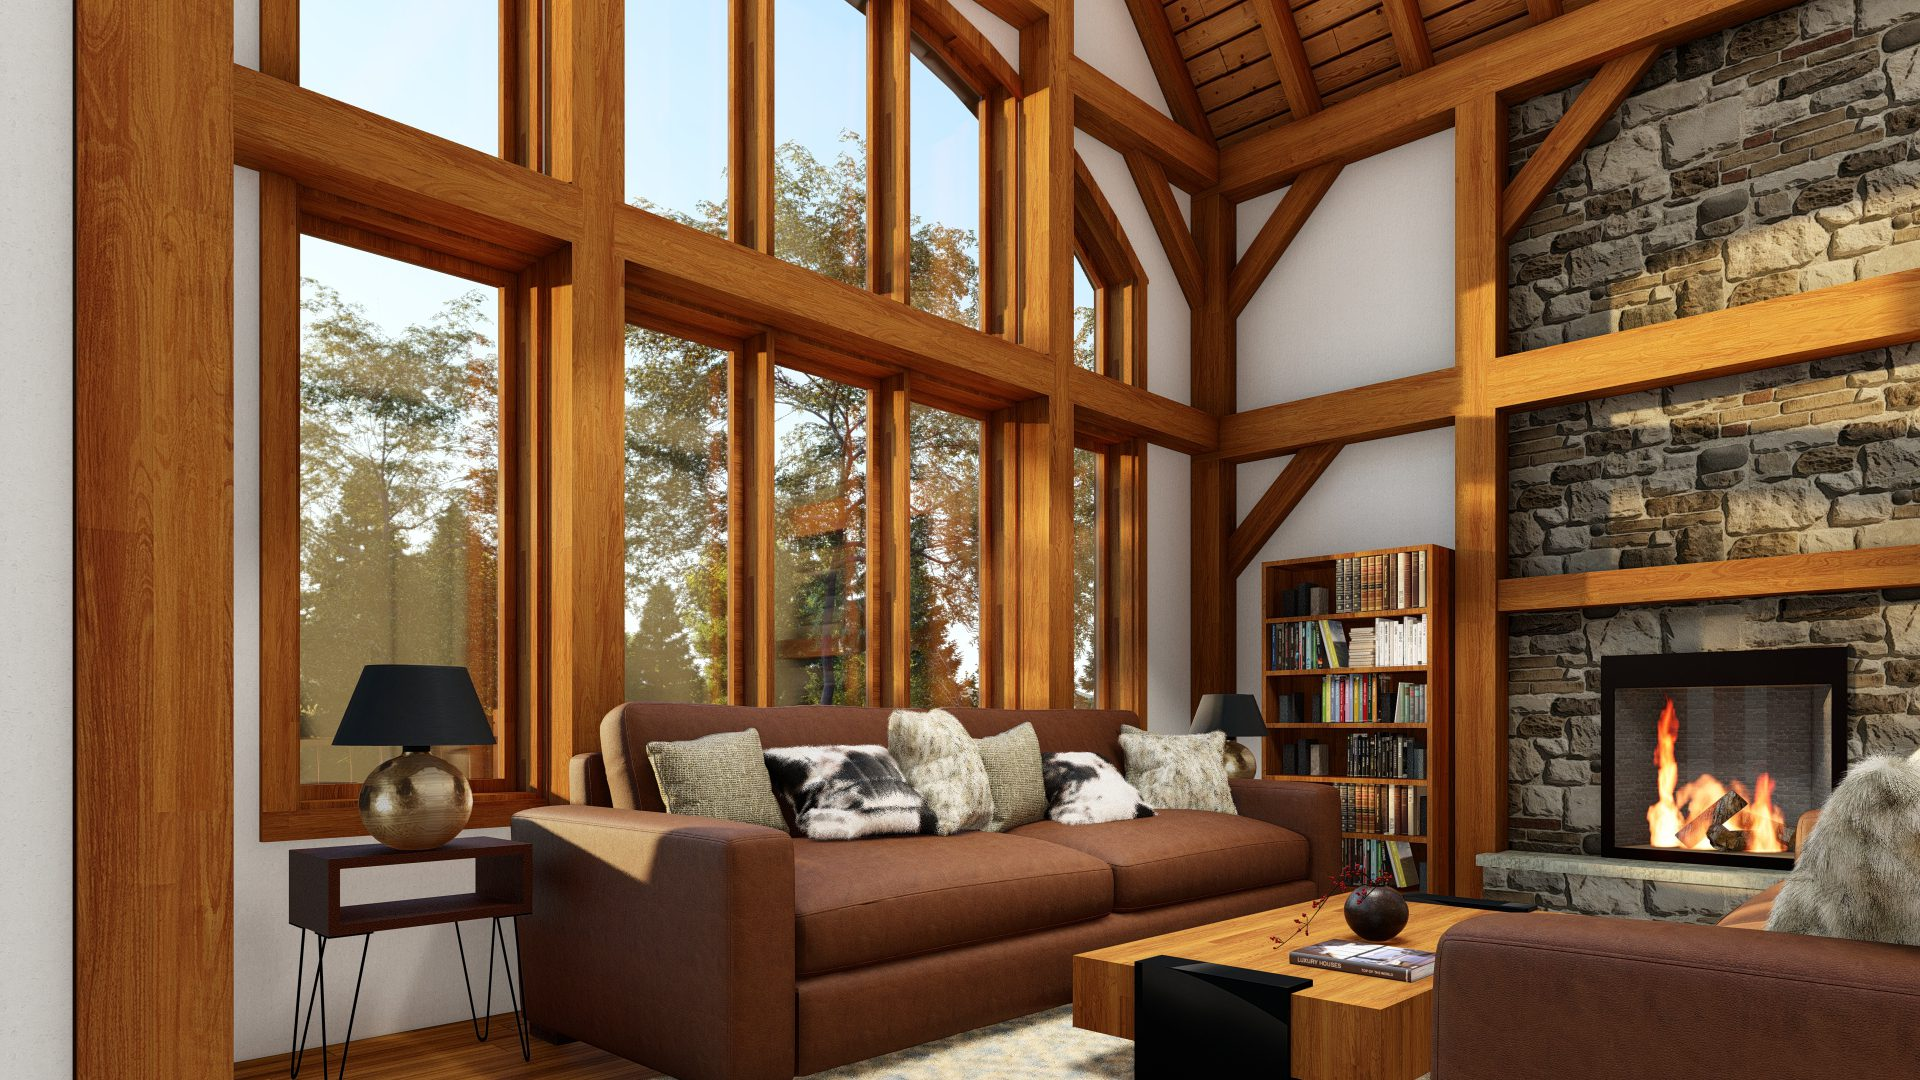 Normerica Timber Frames, House Plans, The Tobermory 3949, Interior, Living Room, Fireplace, Windows